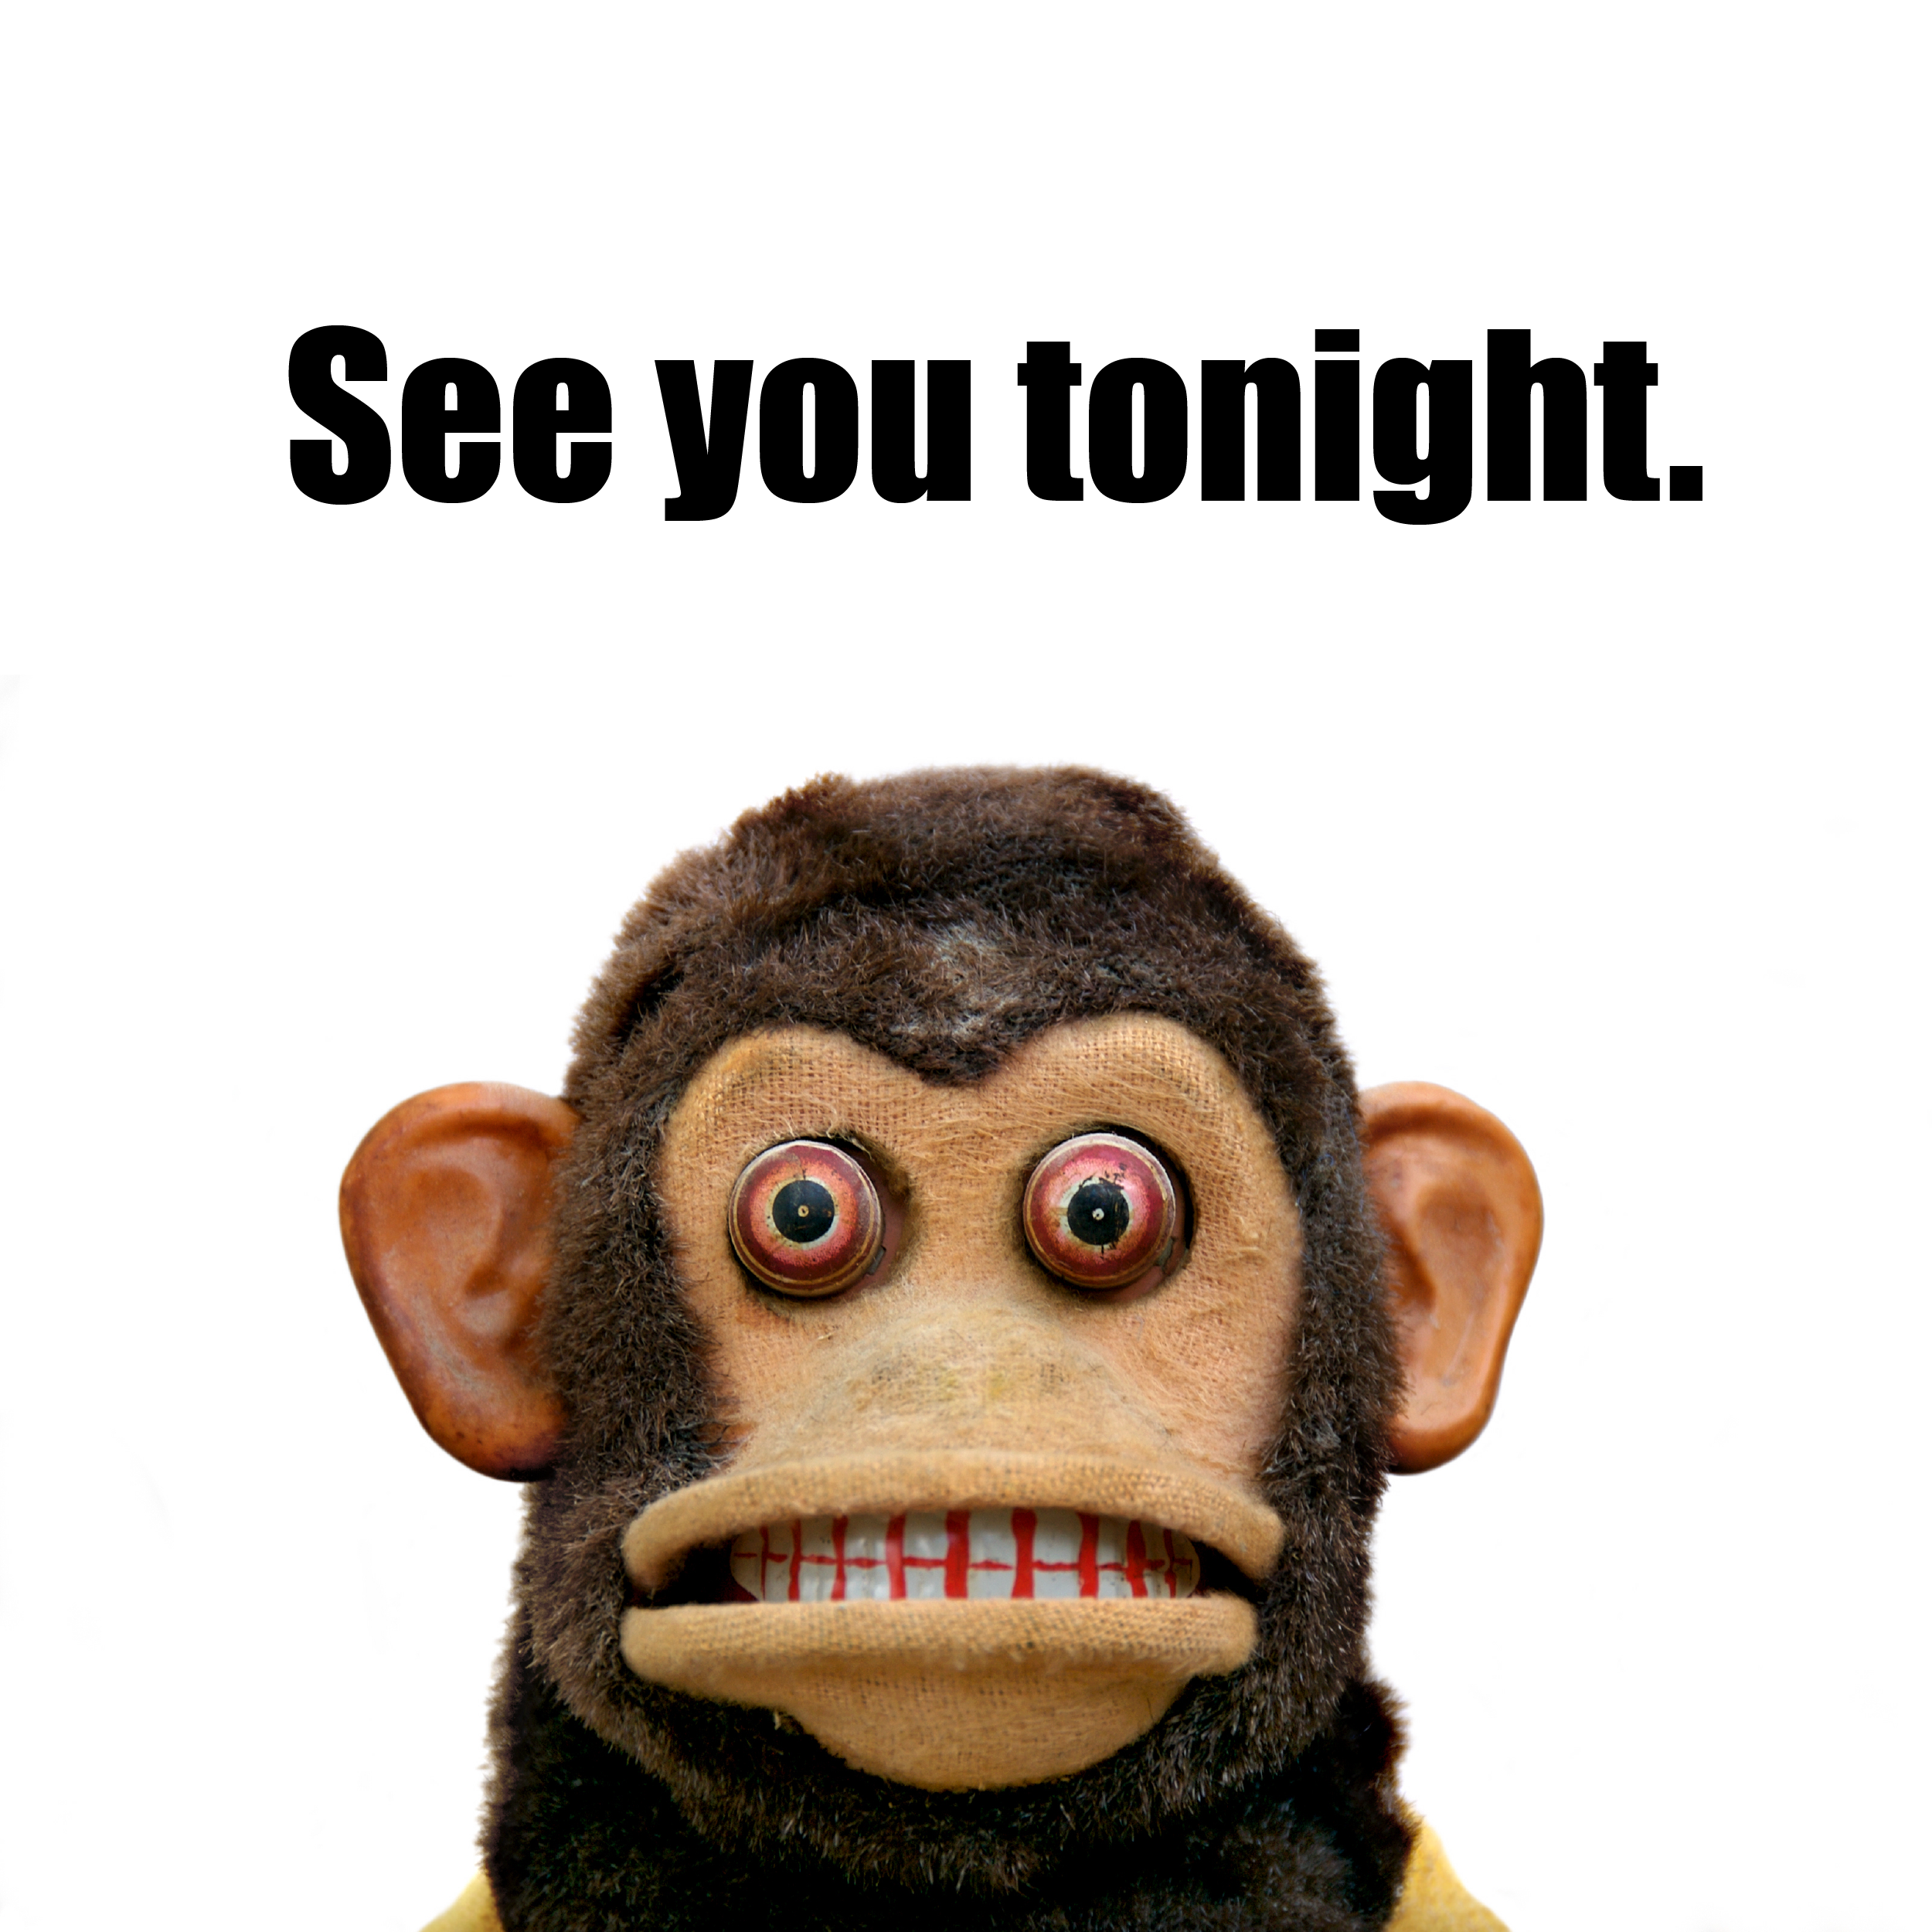 see you tonight musical jolly chimp